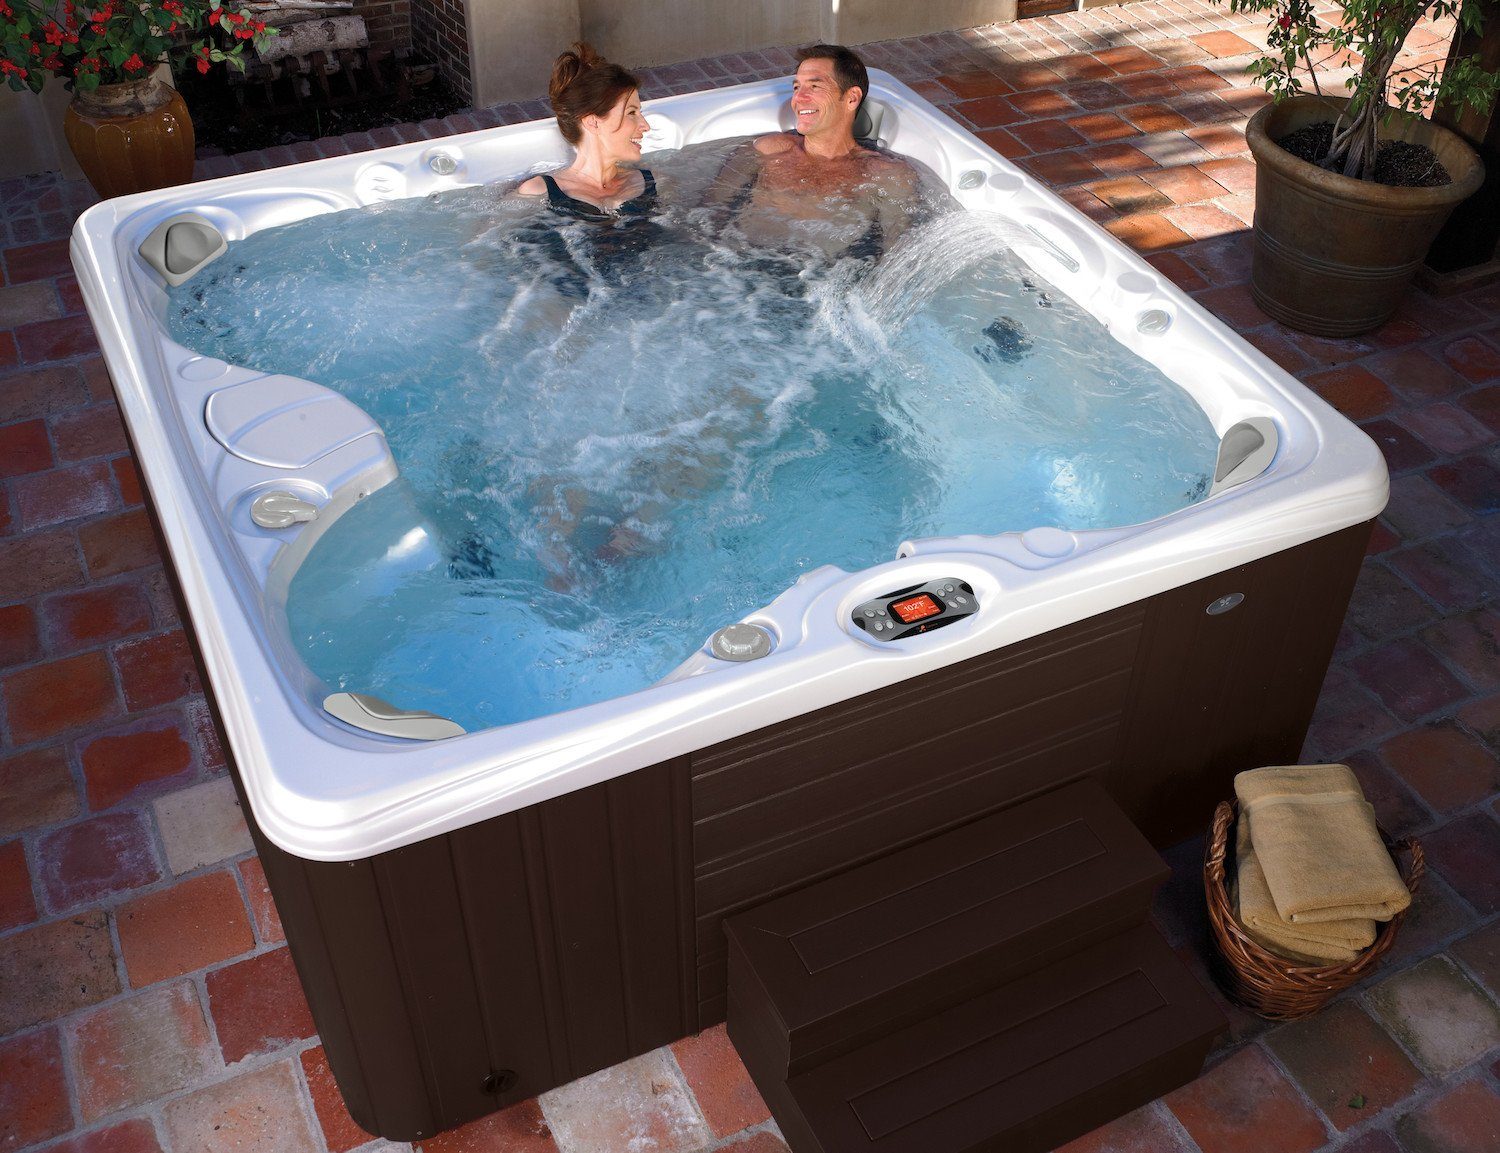 What Is My Hot Tub Worth? Trade-In Value for Buying a New Hot Tub ...